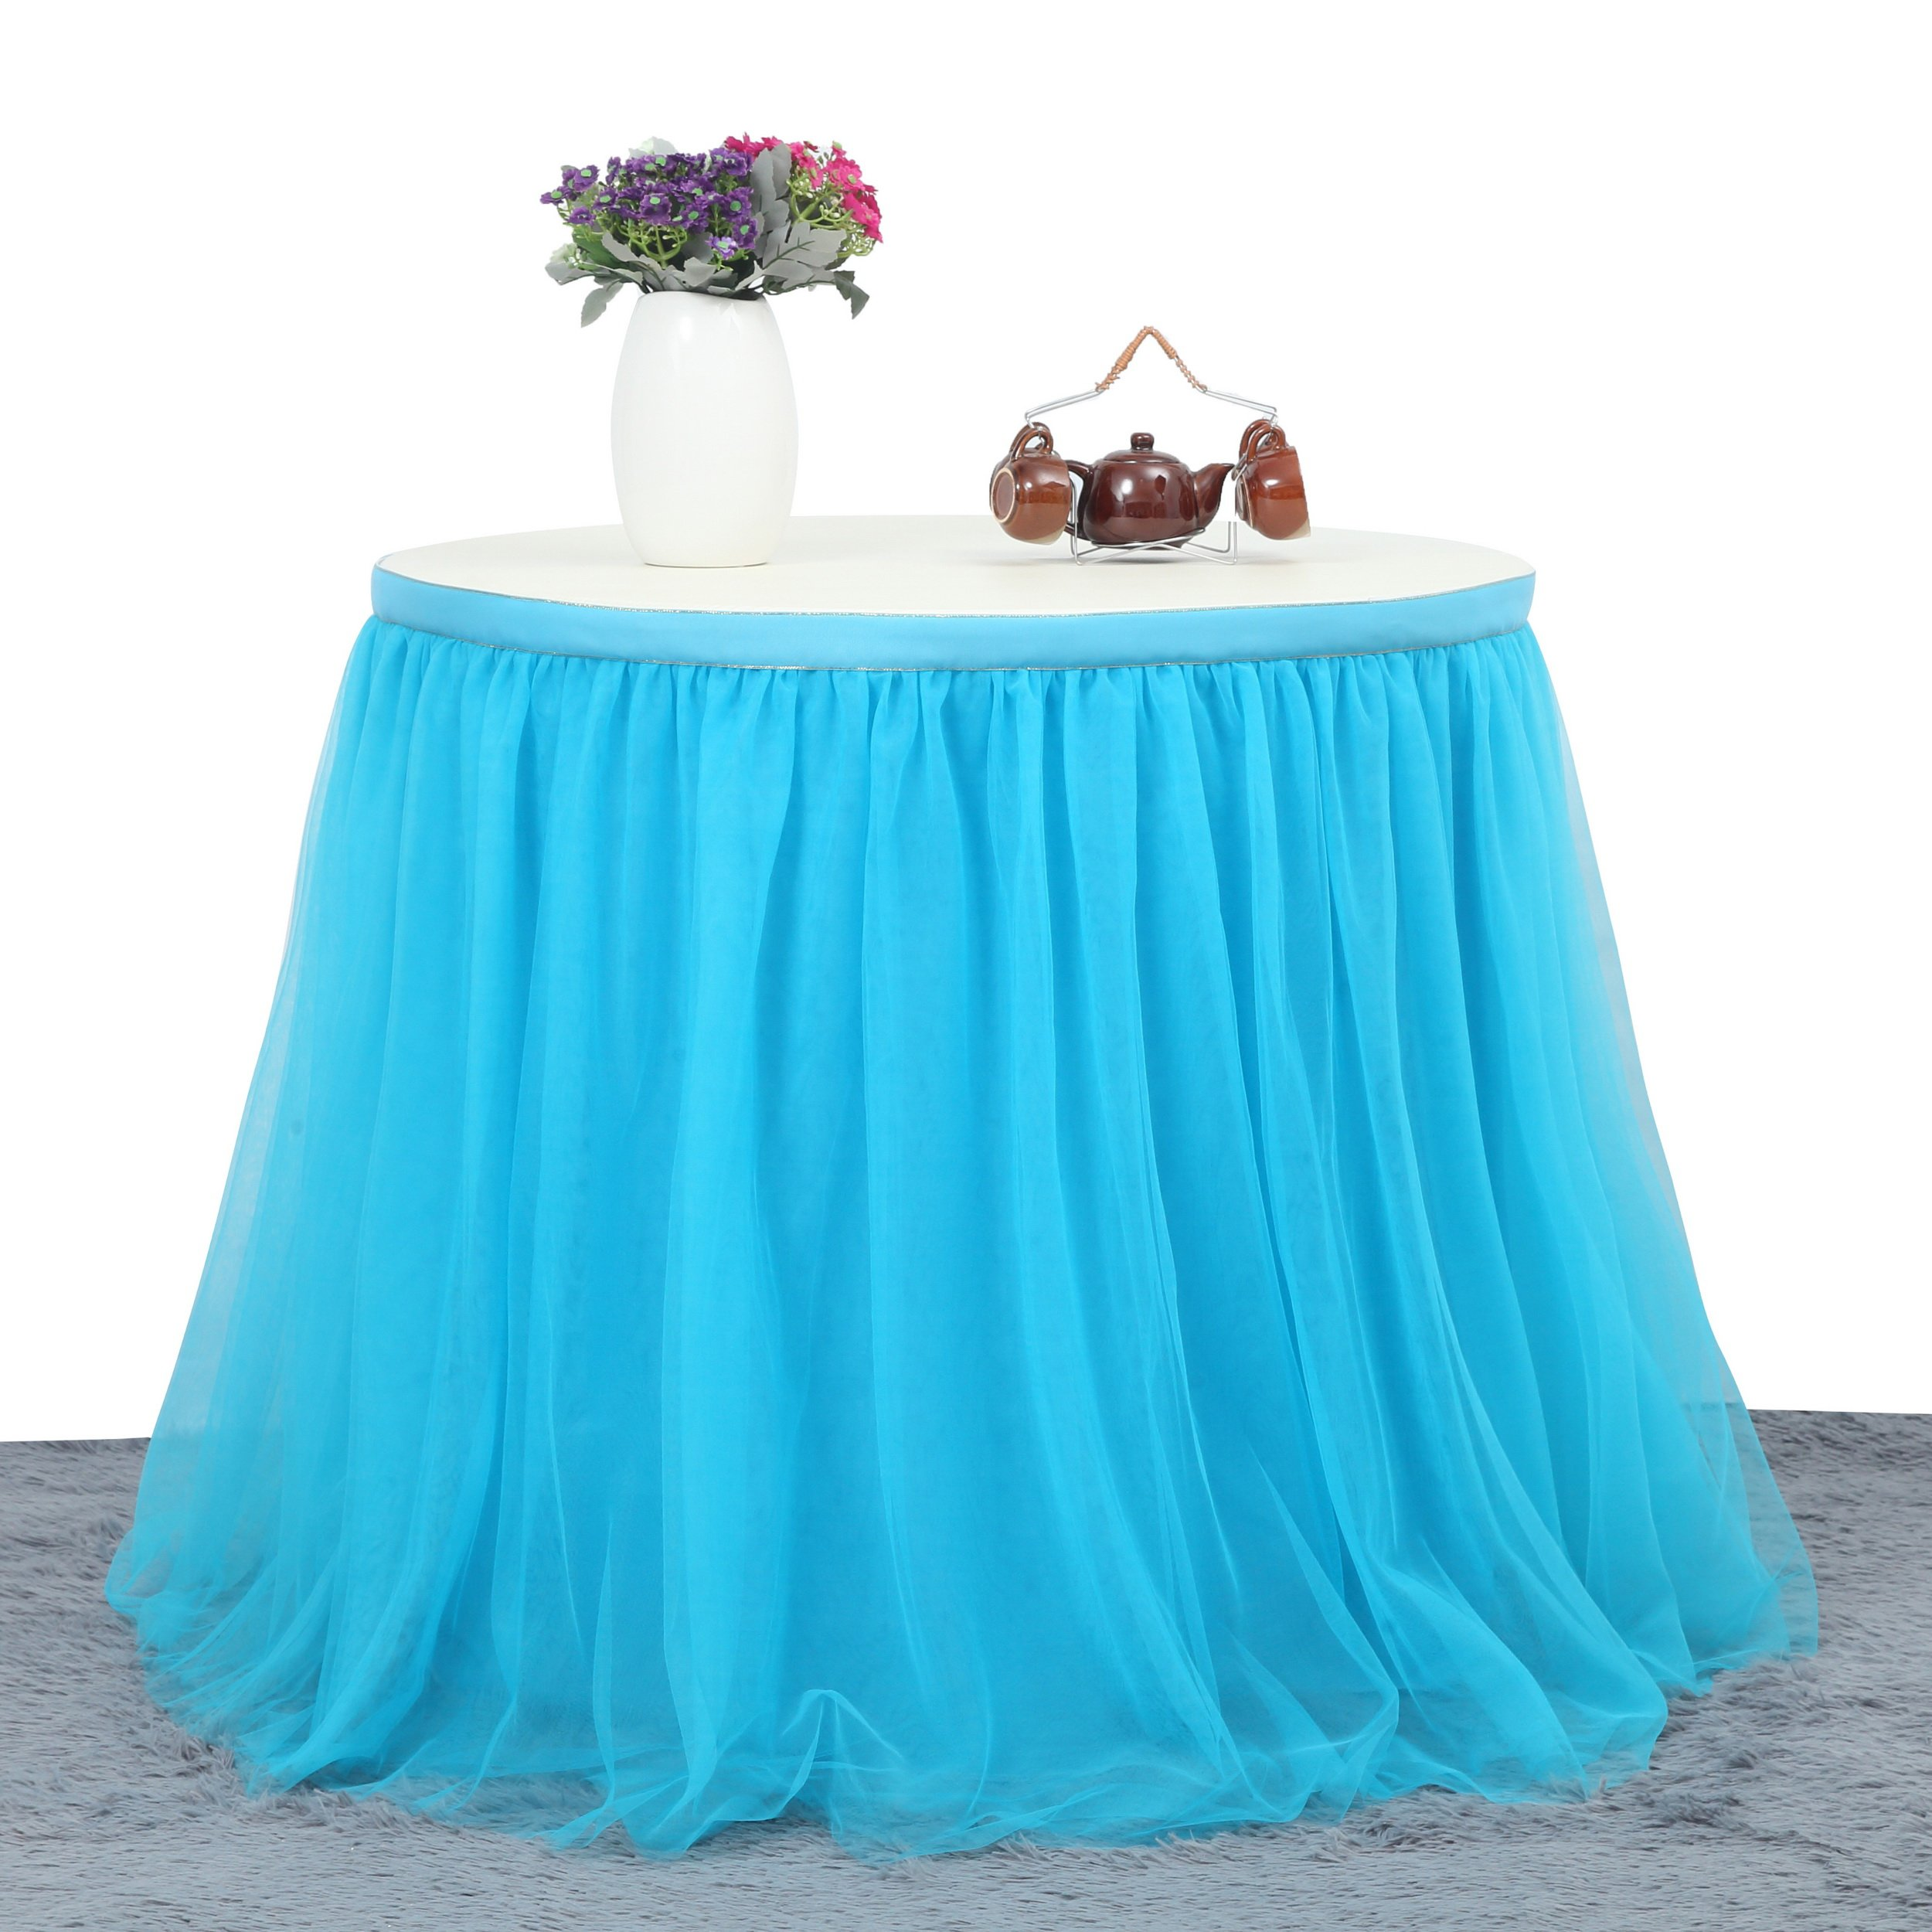 Suppromo 3 Yards High-end Gold Brim 3 Layer Mesh Fluffy Tutu Table Skirt Tulle Tableware For Party,Wedding,Birthday Party&Home Decoration,Table Skirting (L9(ft) H 30in, Blue)